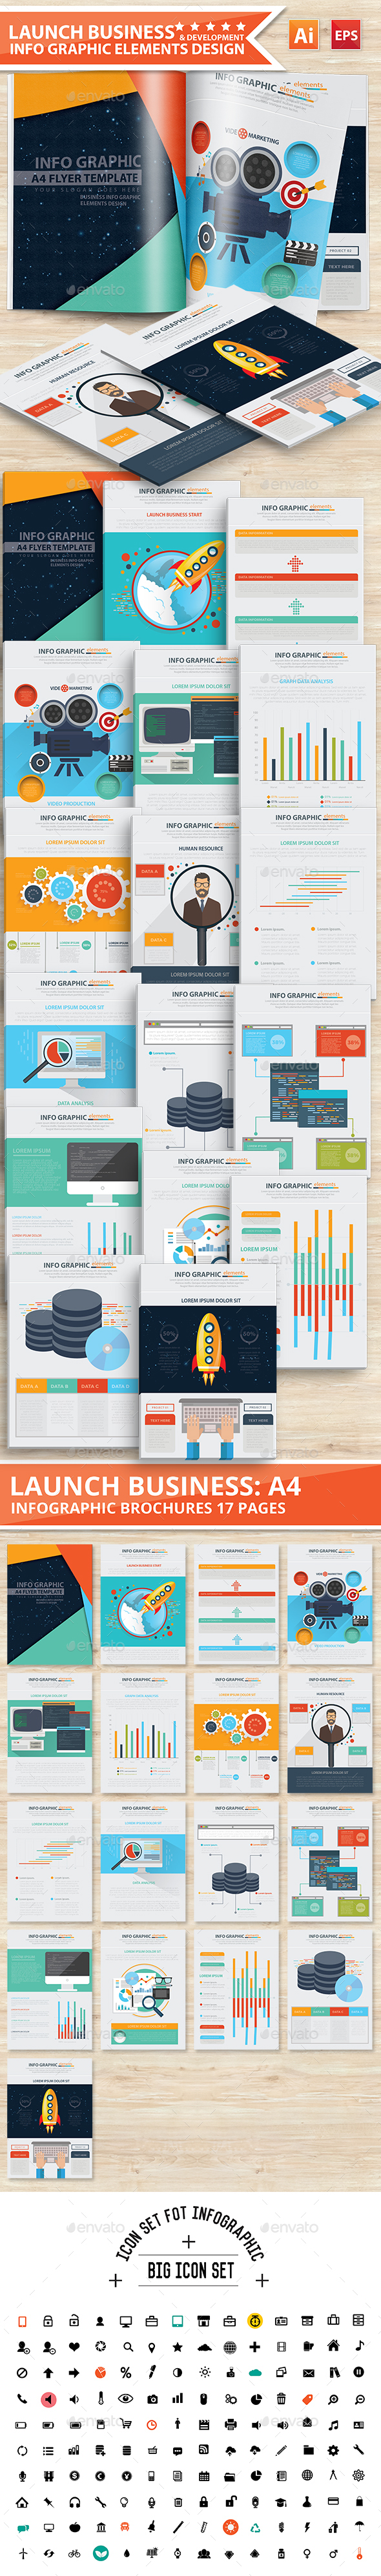 Launch Business Infographic Design 17 Pages - Infographics